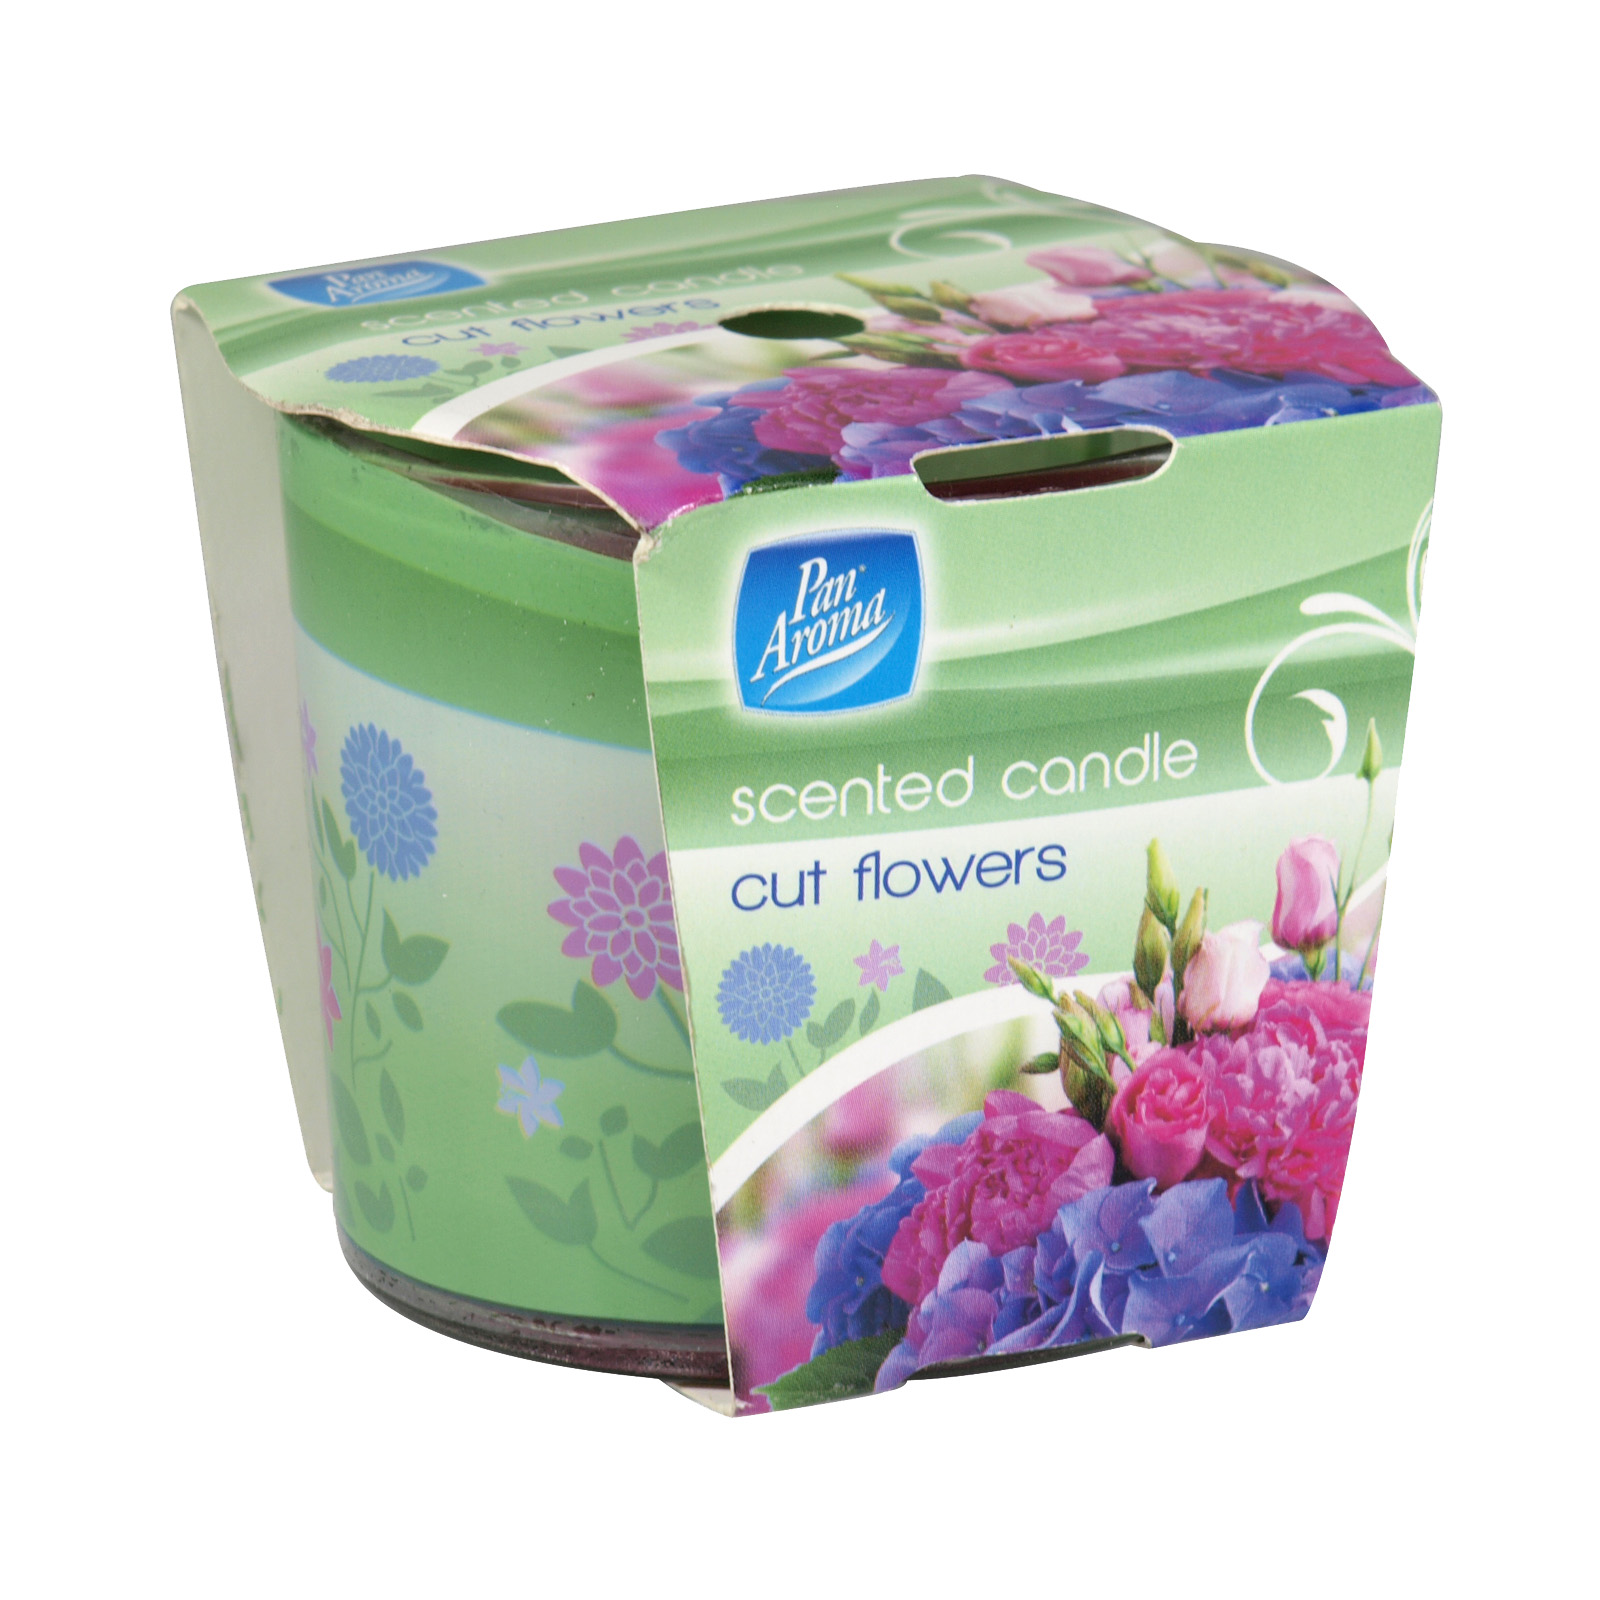 PAN AROMA CANDLE CUT FLOWERS